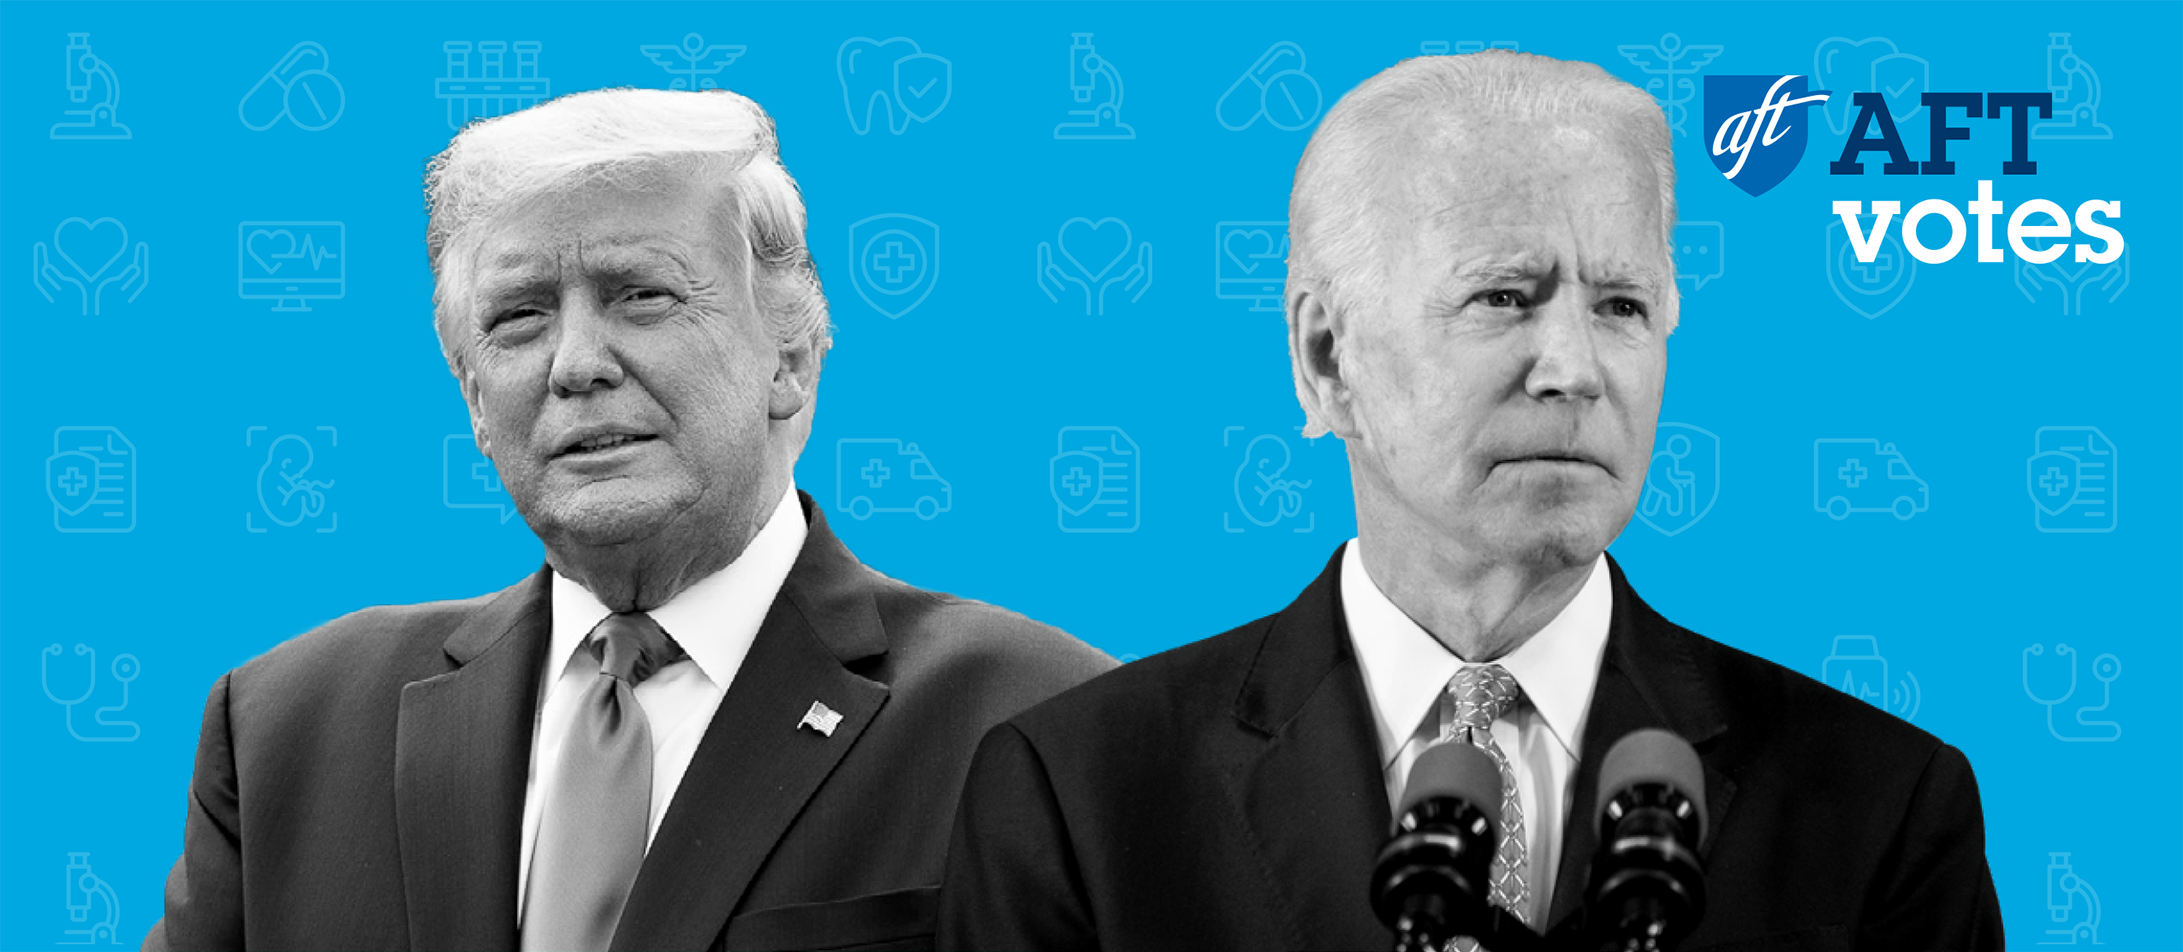 Trump vs Biden on the Issues